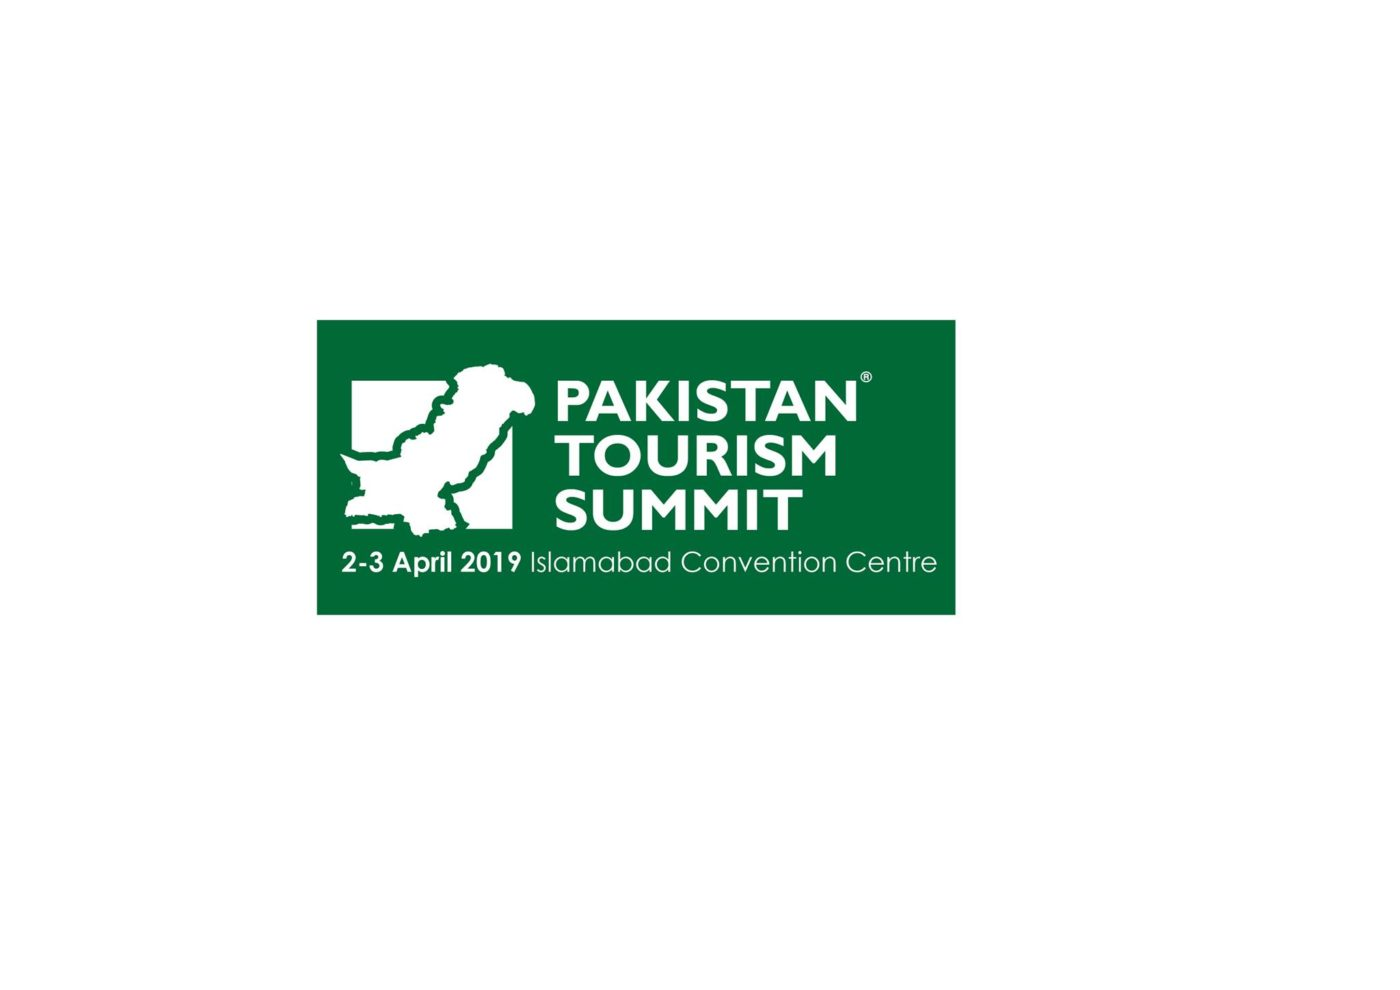 pts2019 - The Pakistan Tourism Summit 2019 Snub